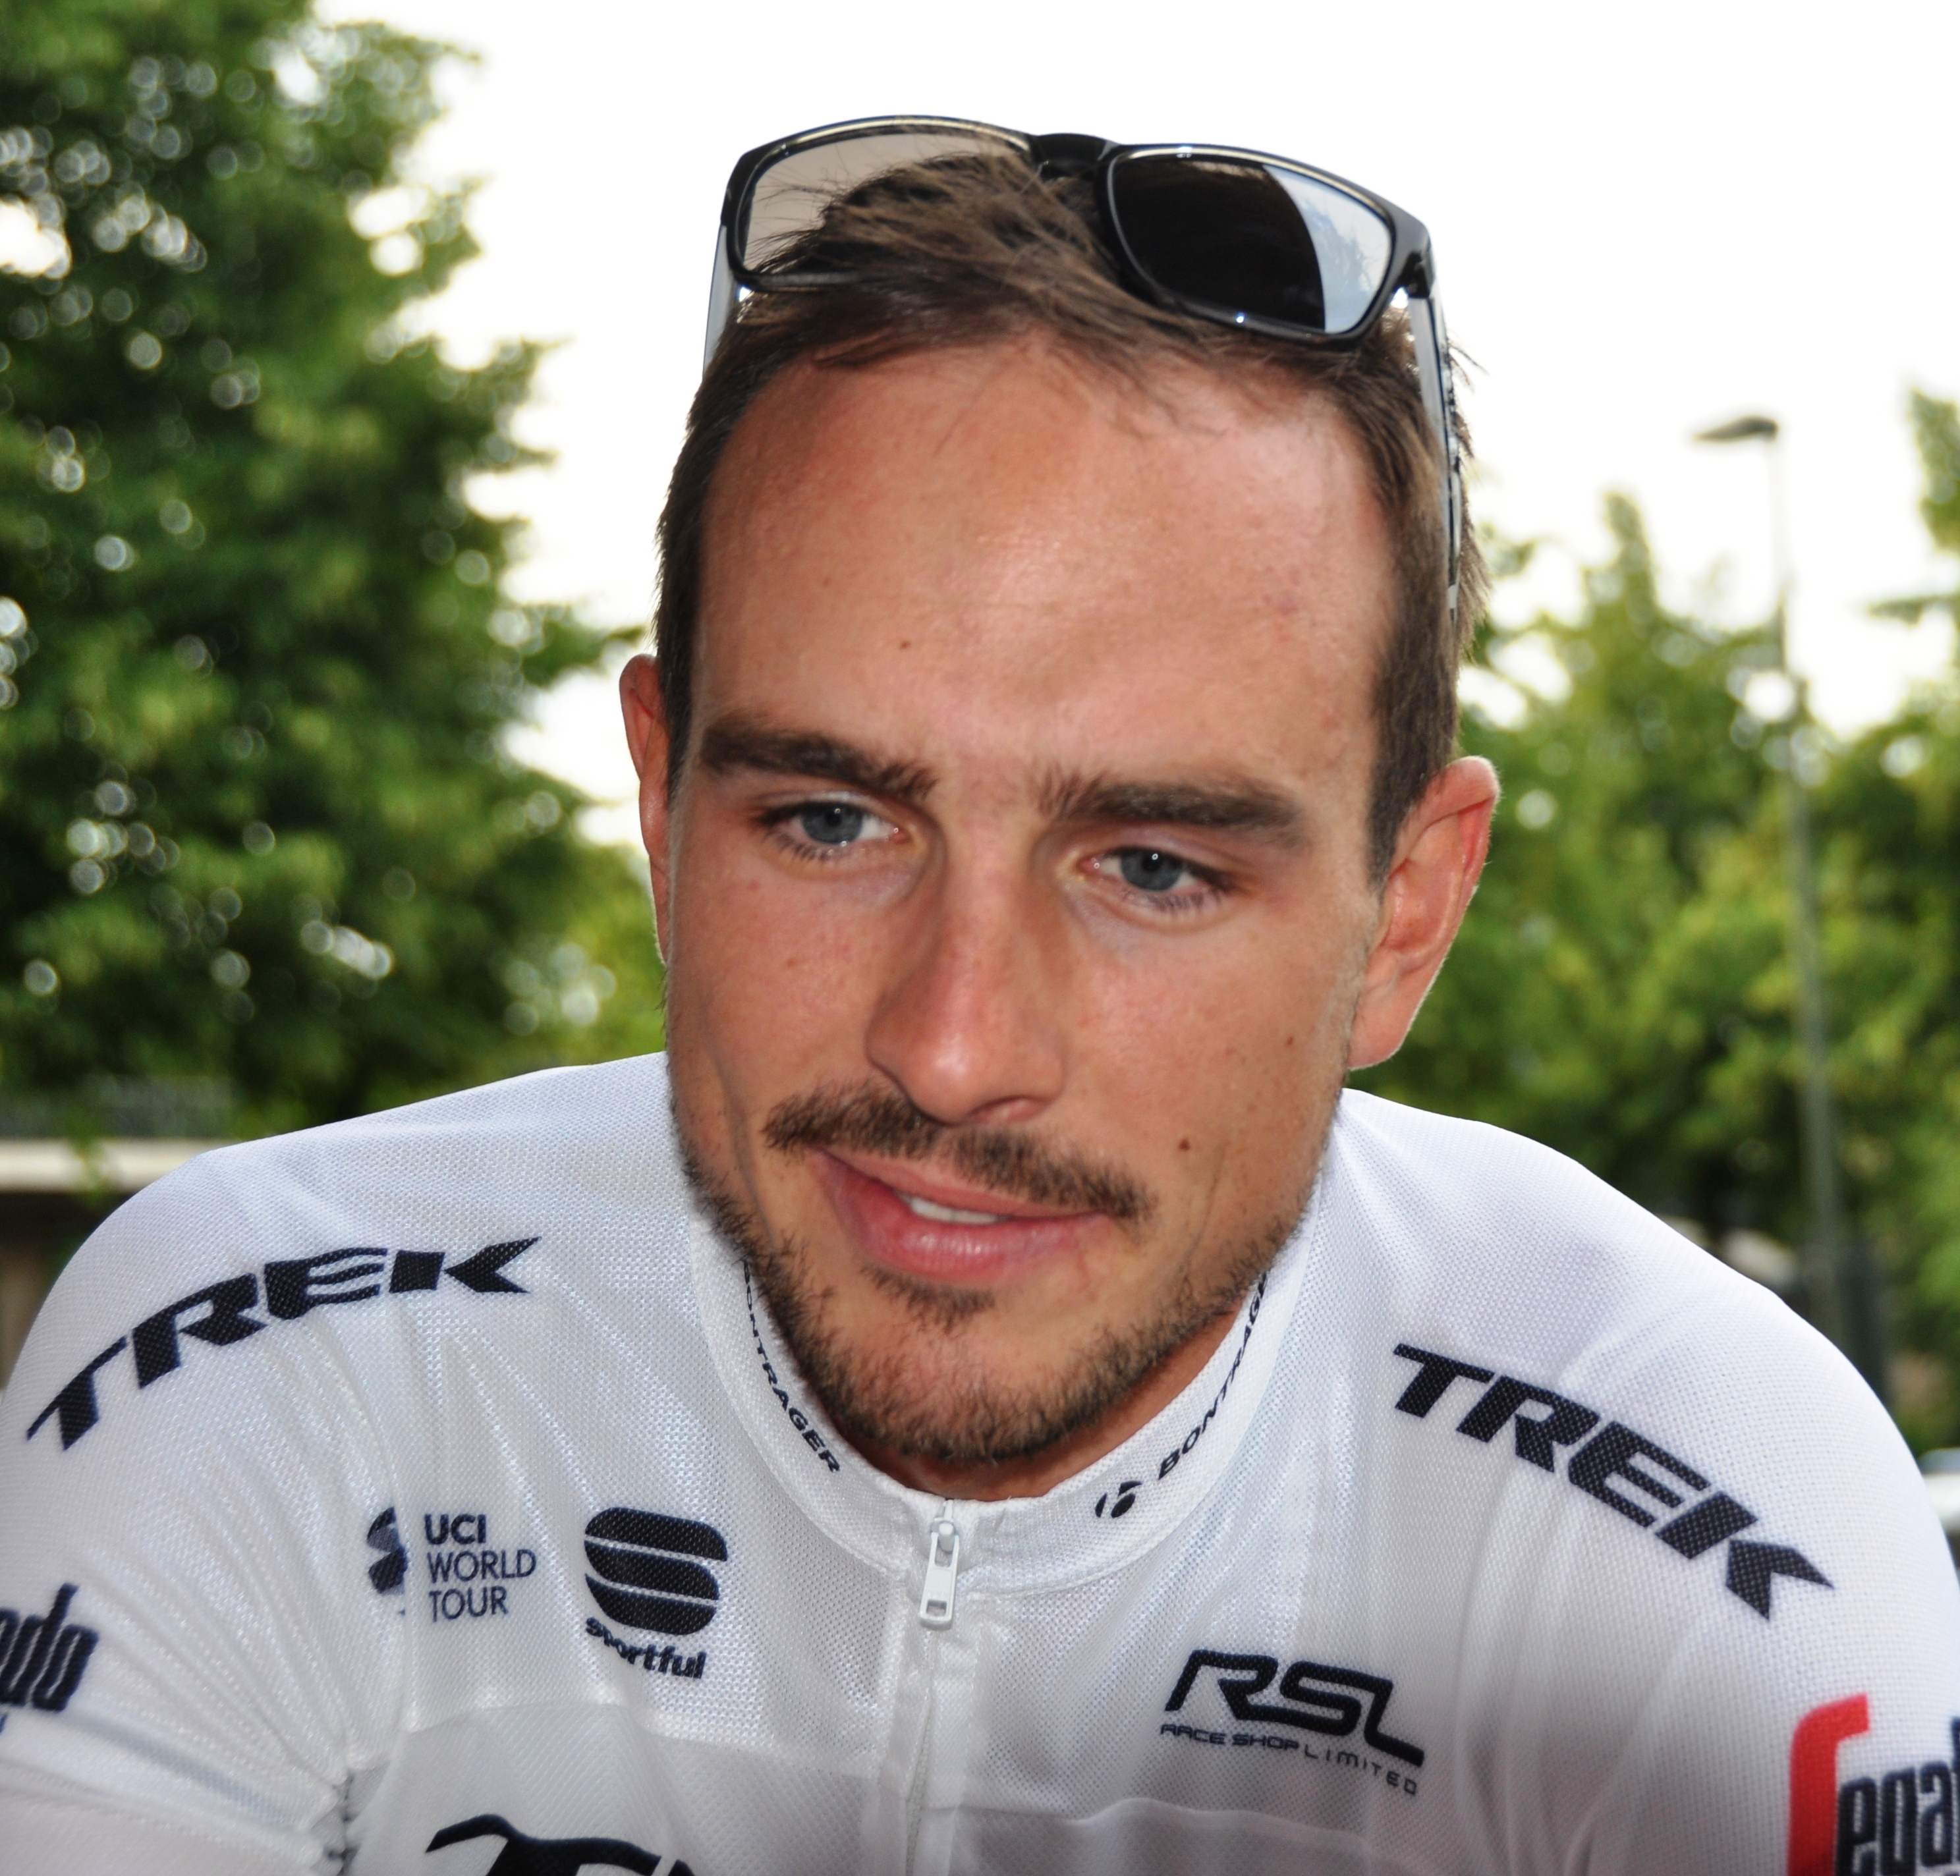 The 29-year old son of father Frank Degenkolb and mother(?) John Degenkolb in 2018 photo. John Degenkolb earned a  million dollar salary - leaving the net worth at 0.3 million in 2018